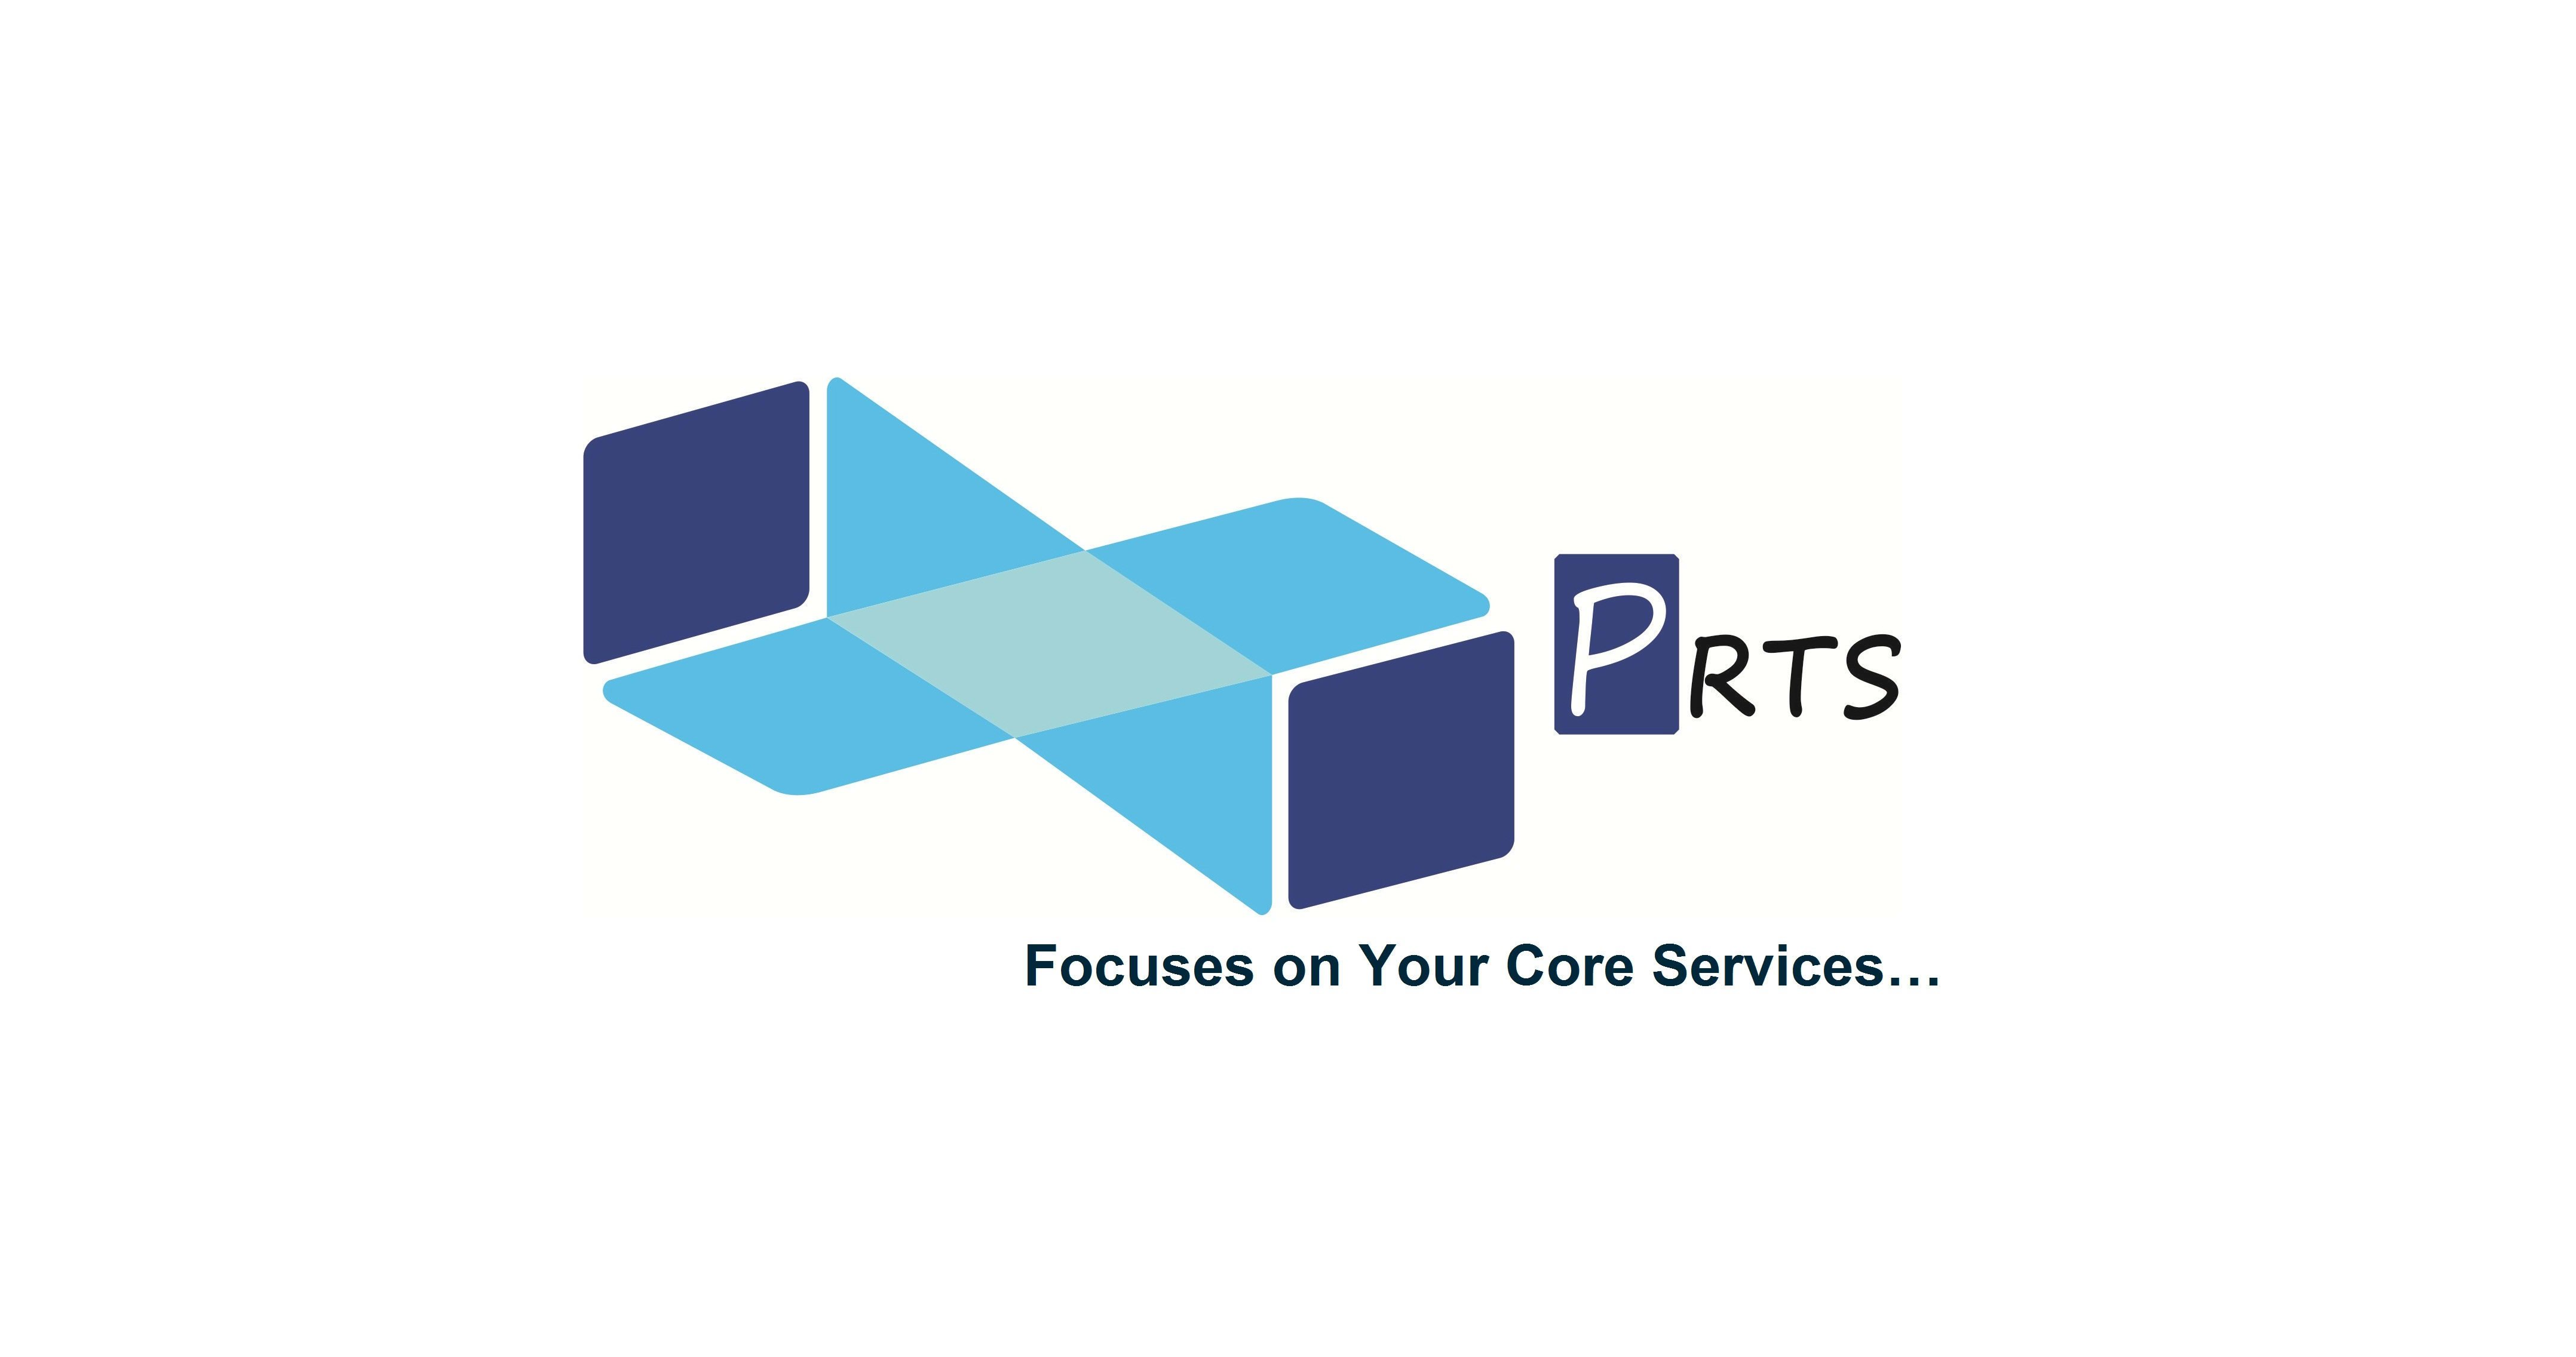 PR TRADING AND SERVICES